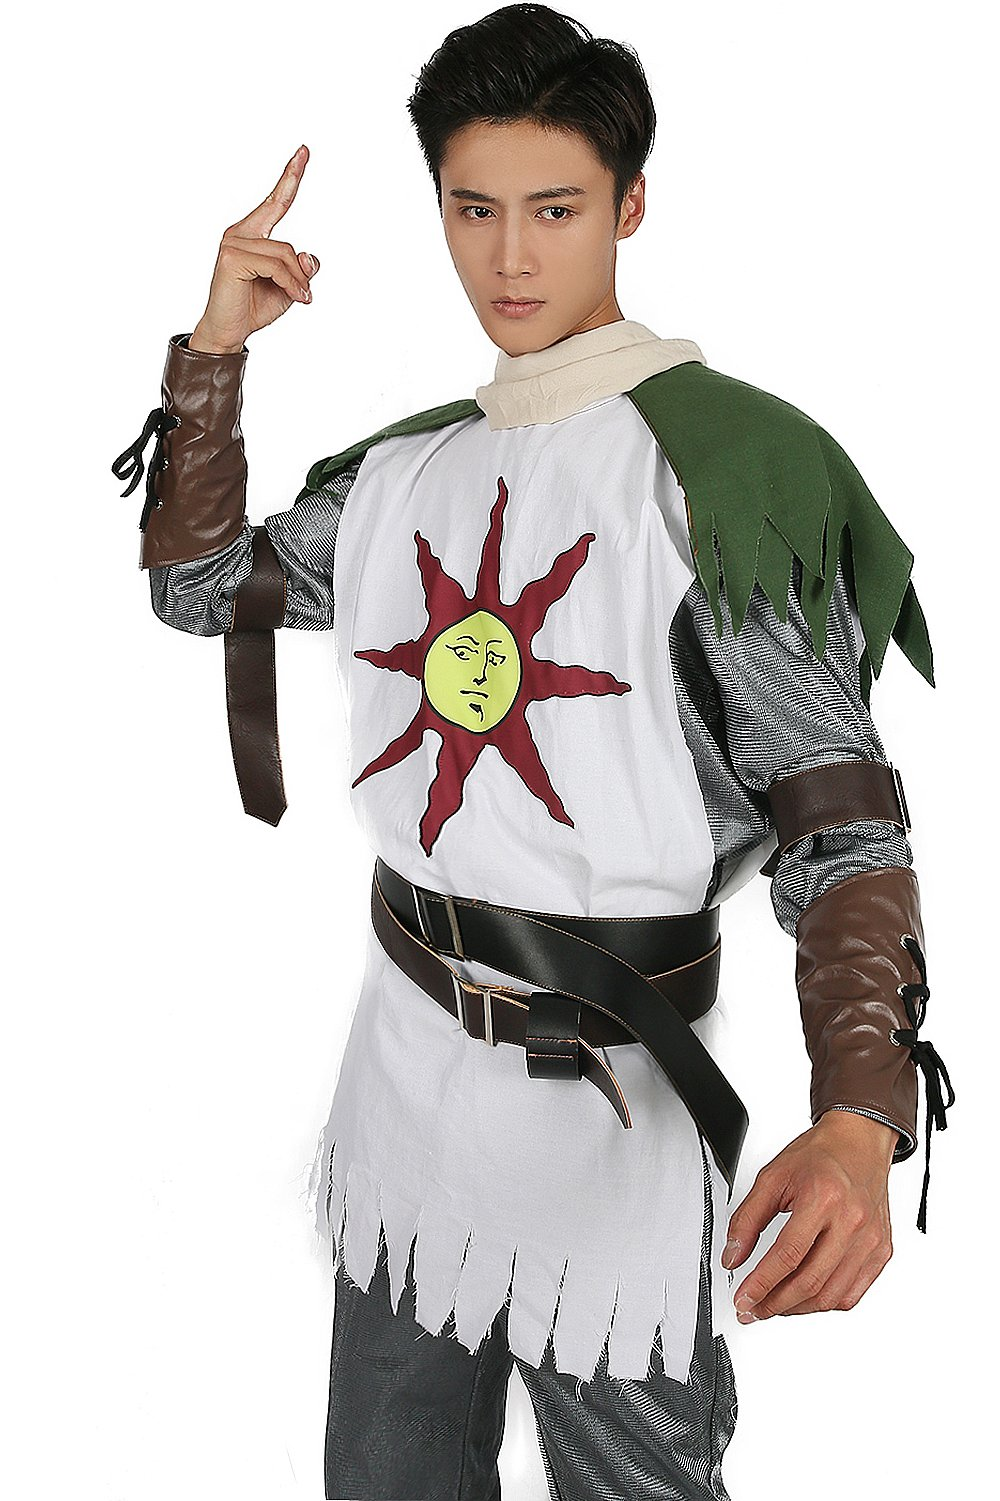 Solaire Costume Sun Warrior Outfit for Halloween Cosplay L by xcostume (Image #5)